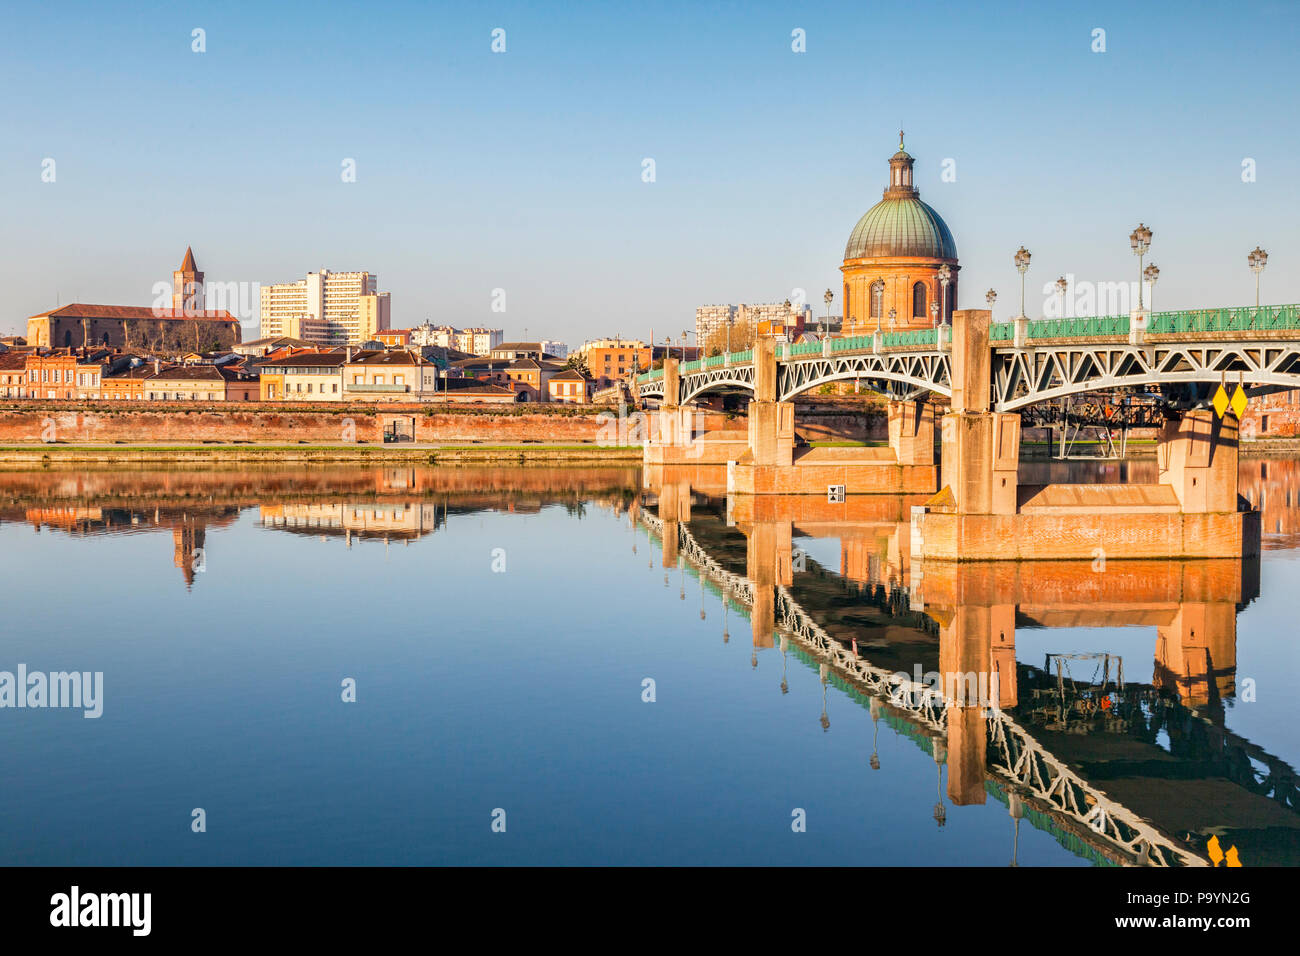 The Saint Pierre Bridge and the dome of the La Grace Hospital reflecting in the Garonne, Toulouse, Haute Garonne, Midi Pryenees, France. - Stock Image